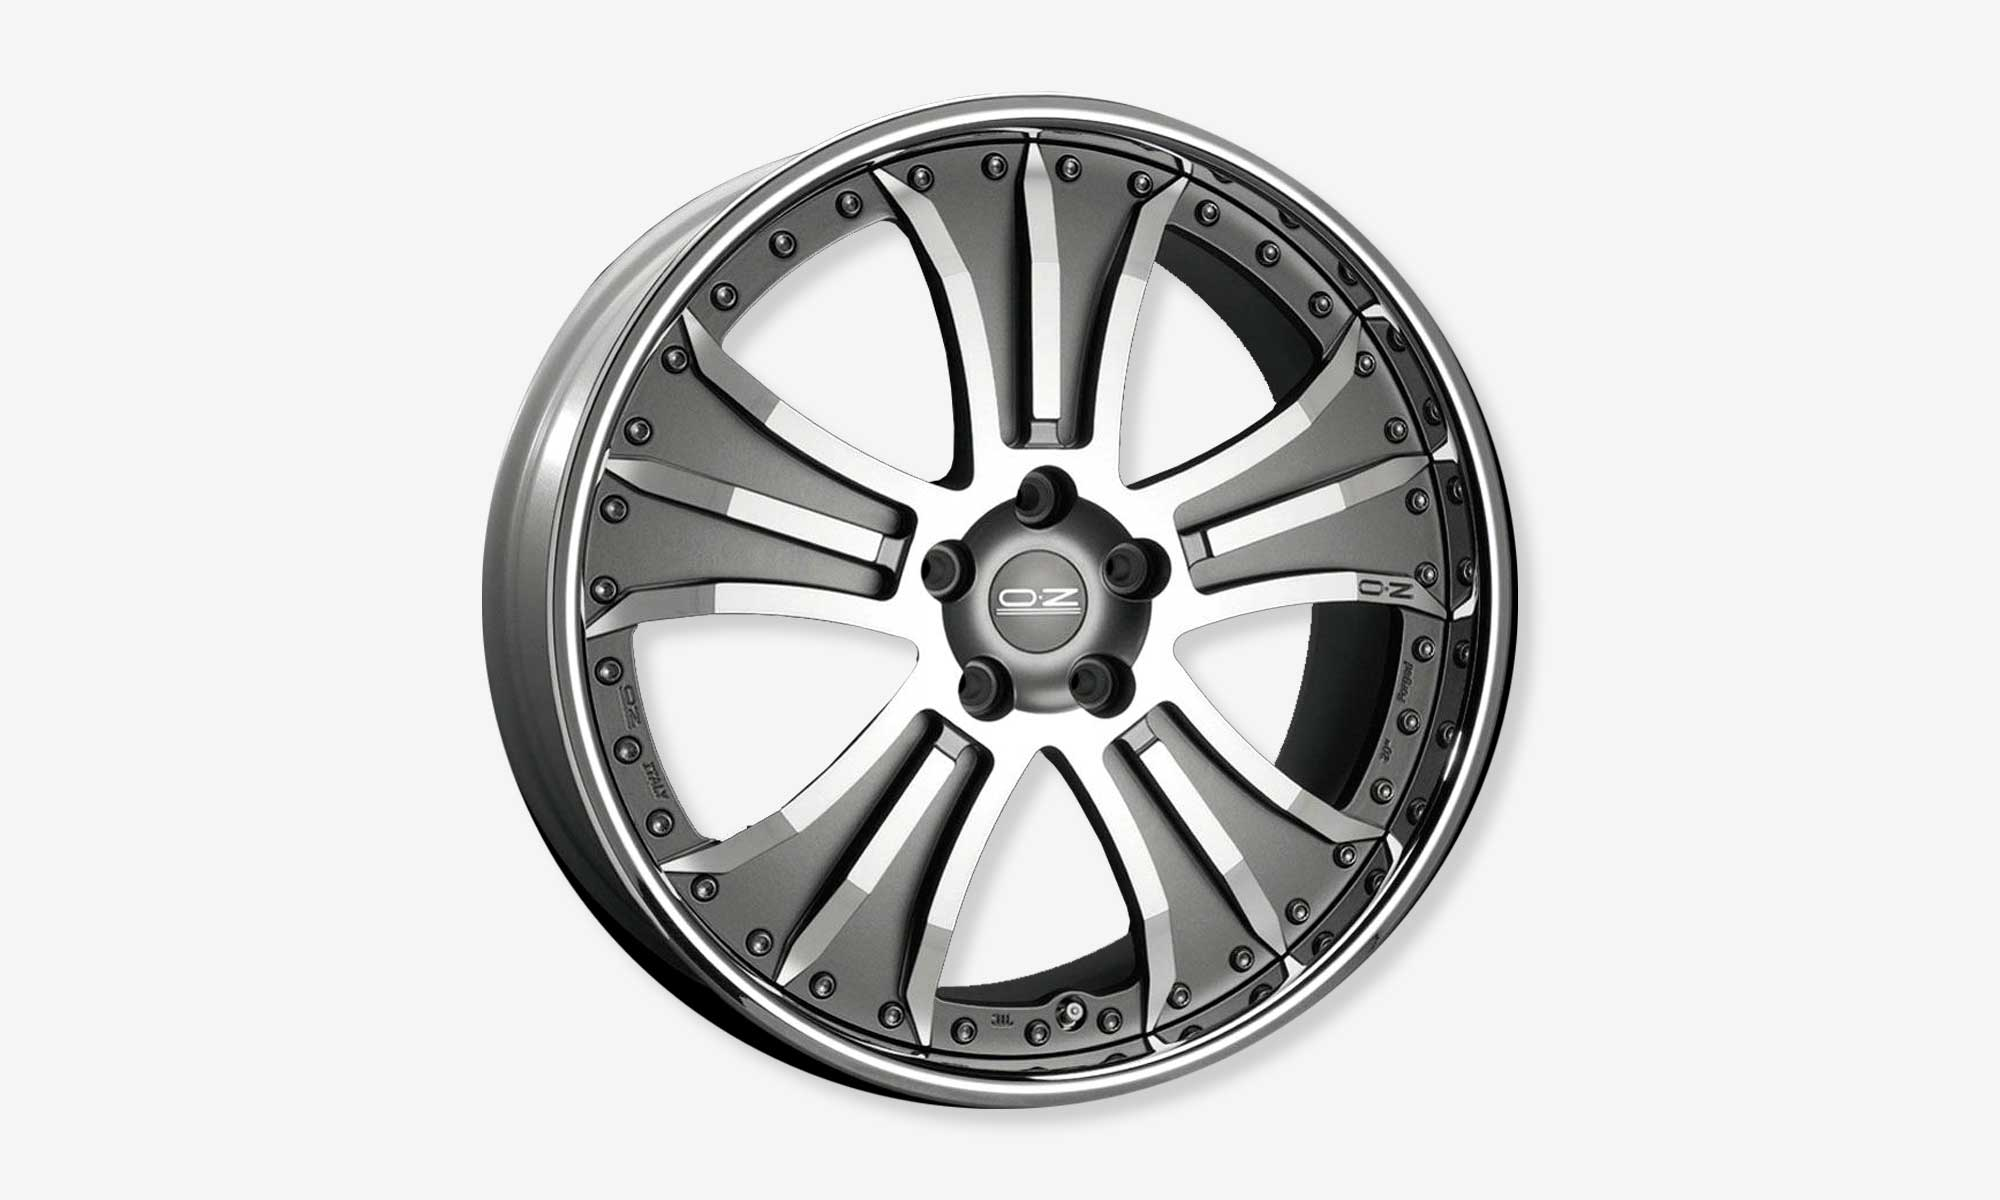 Alloy wheels Granturismo for Maserati 4200 EVO